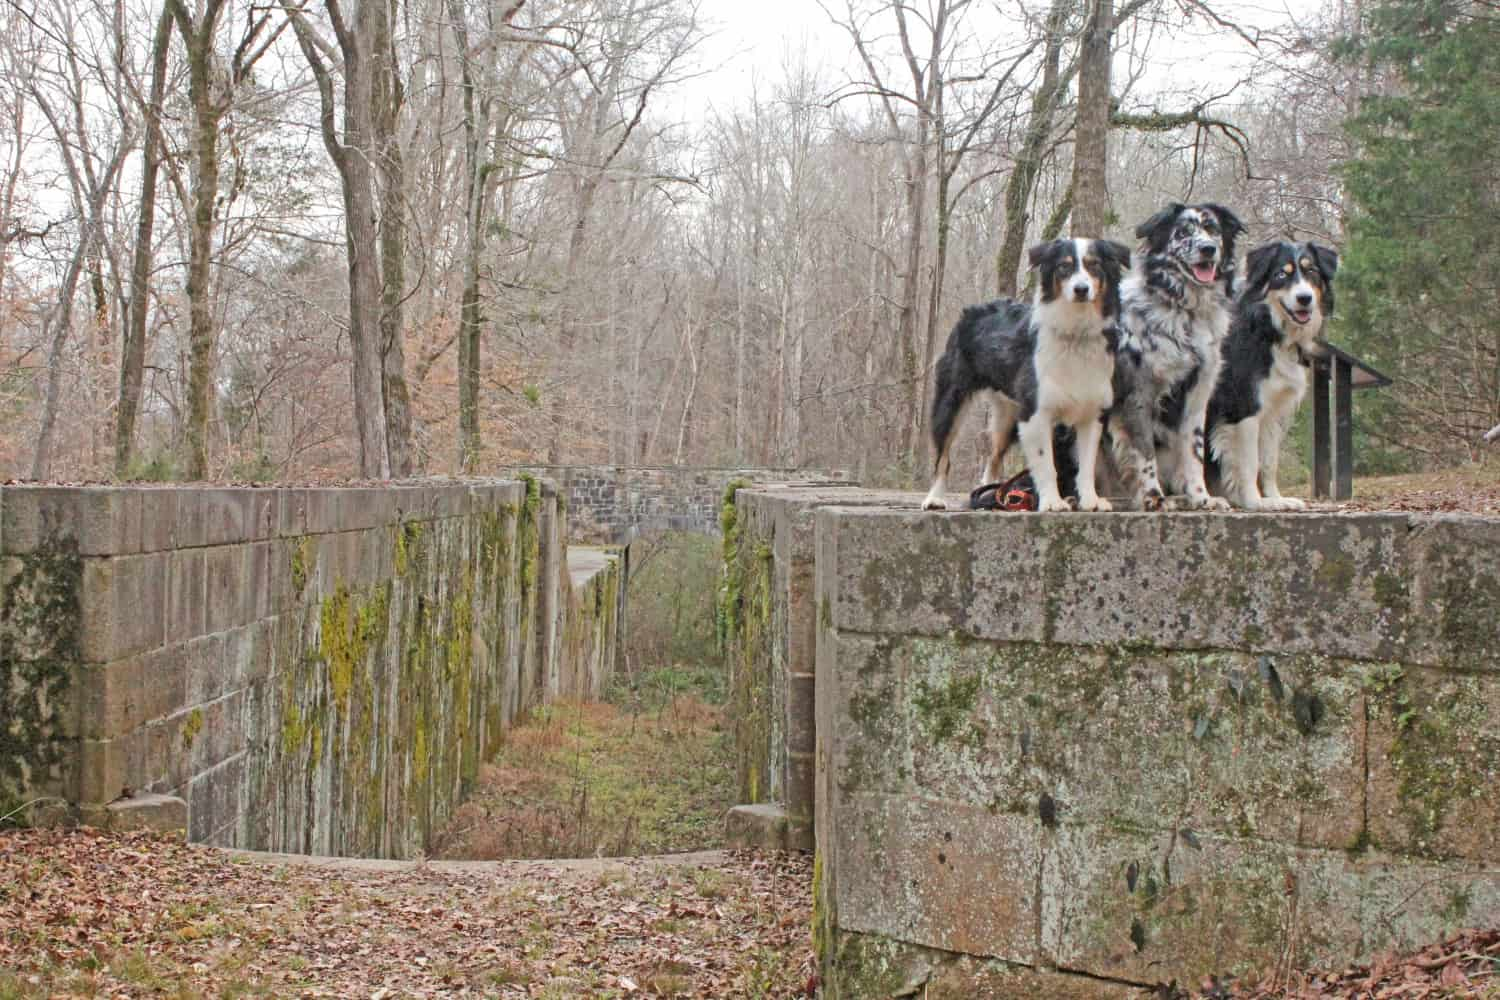 Dog Friendly Hike at Landsford Canal State Park